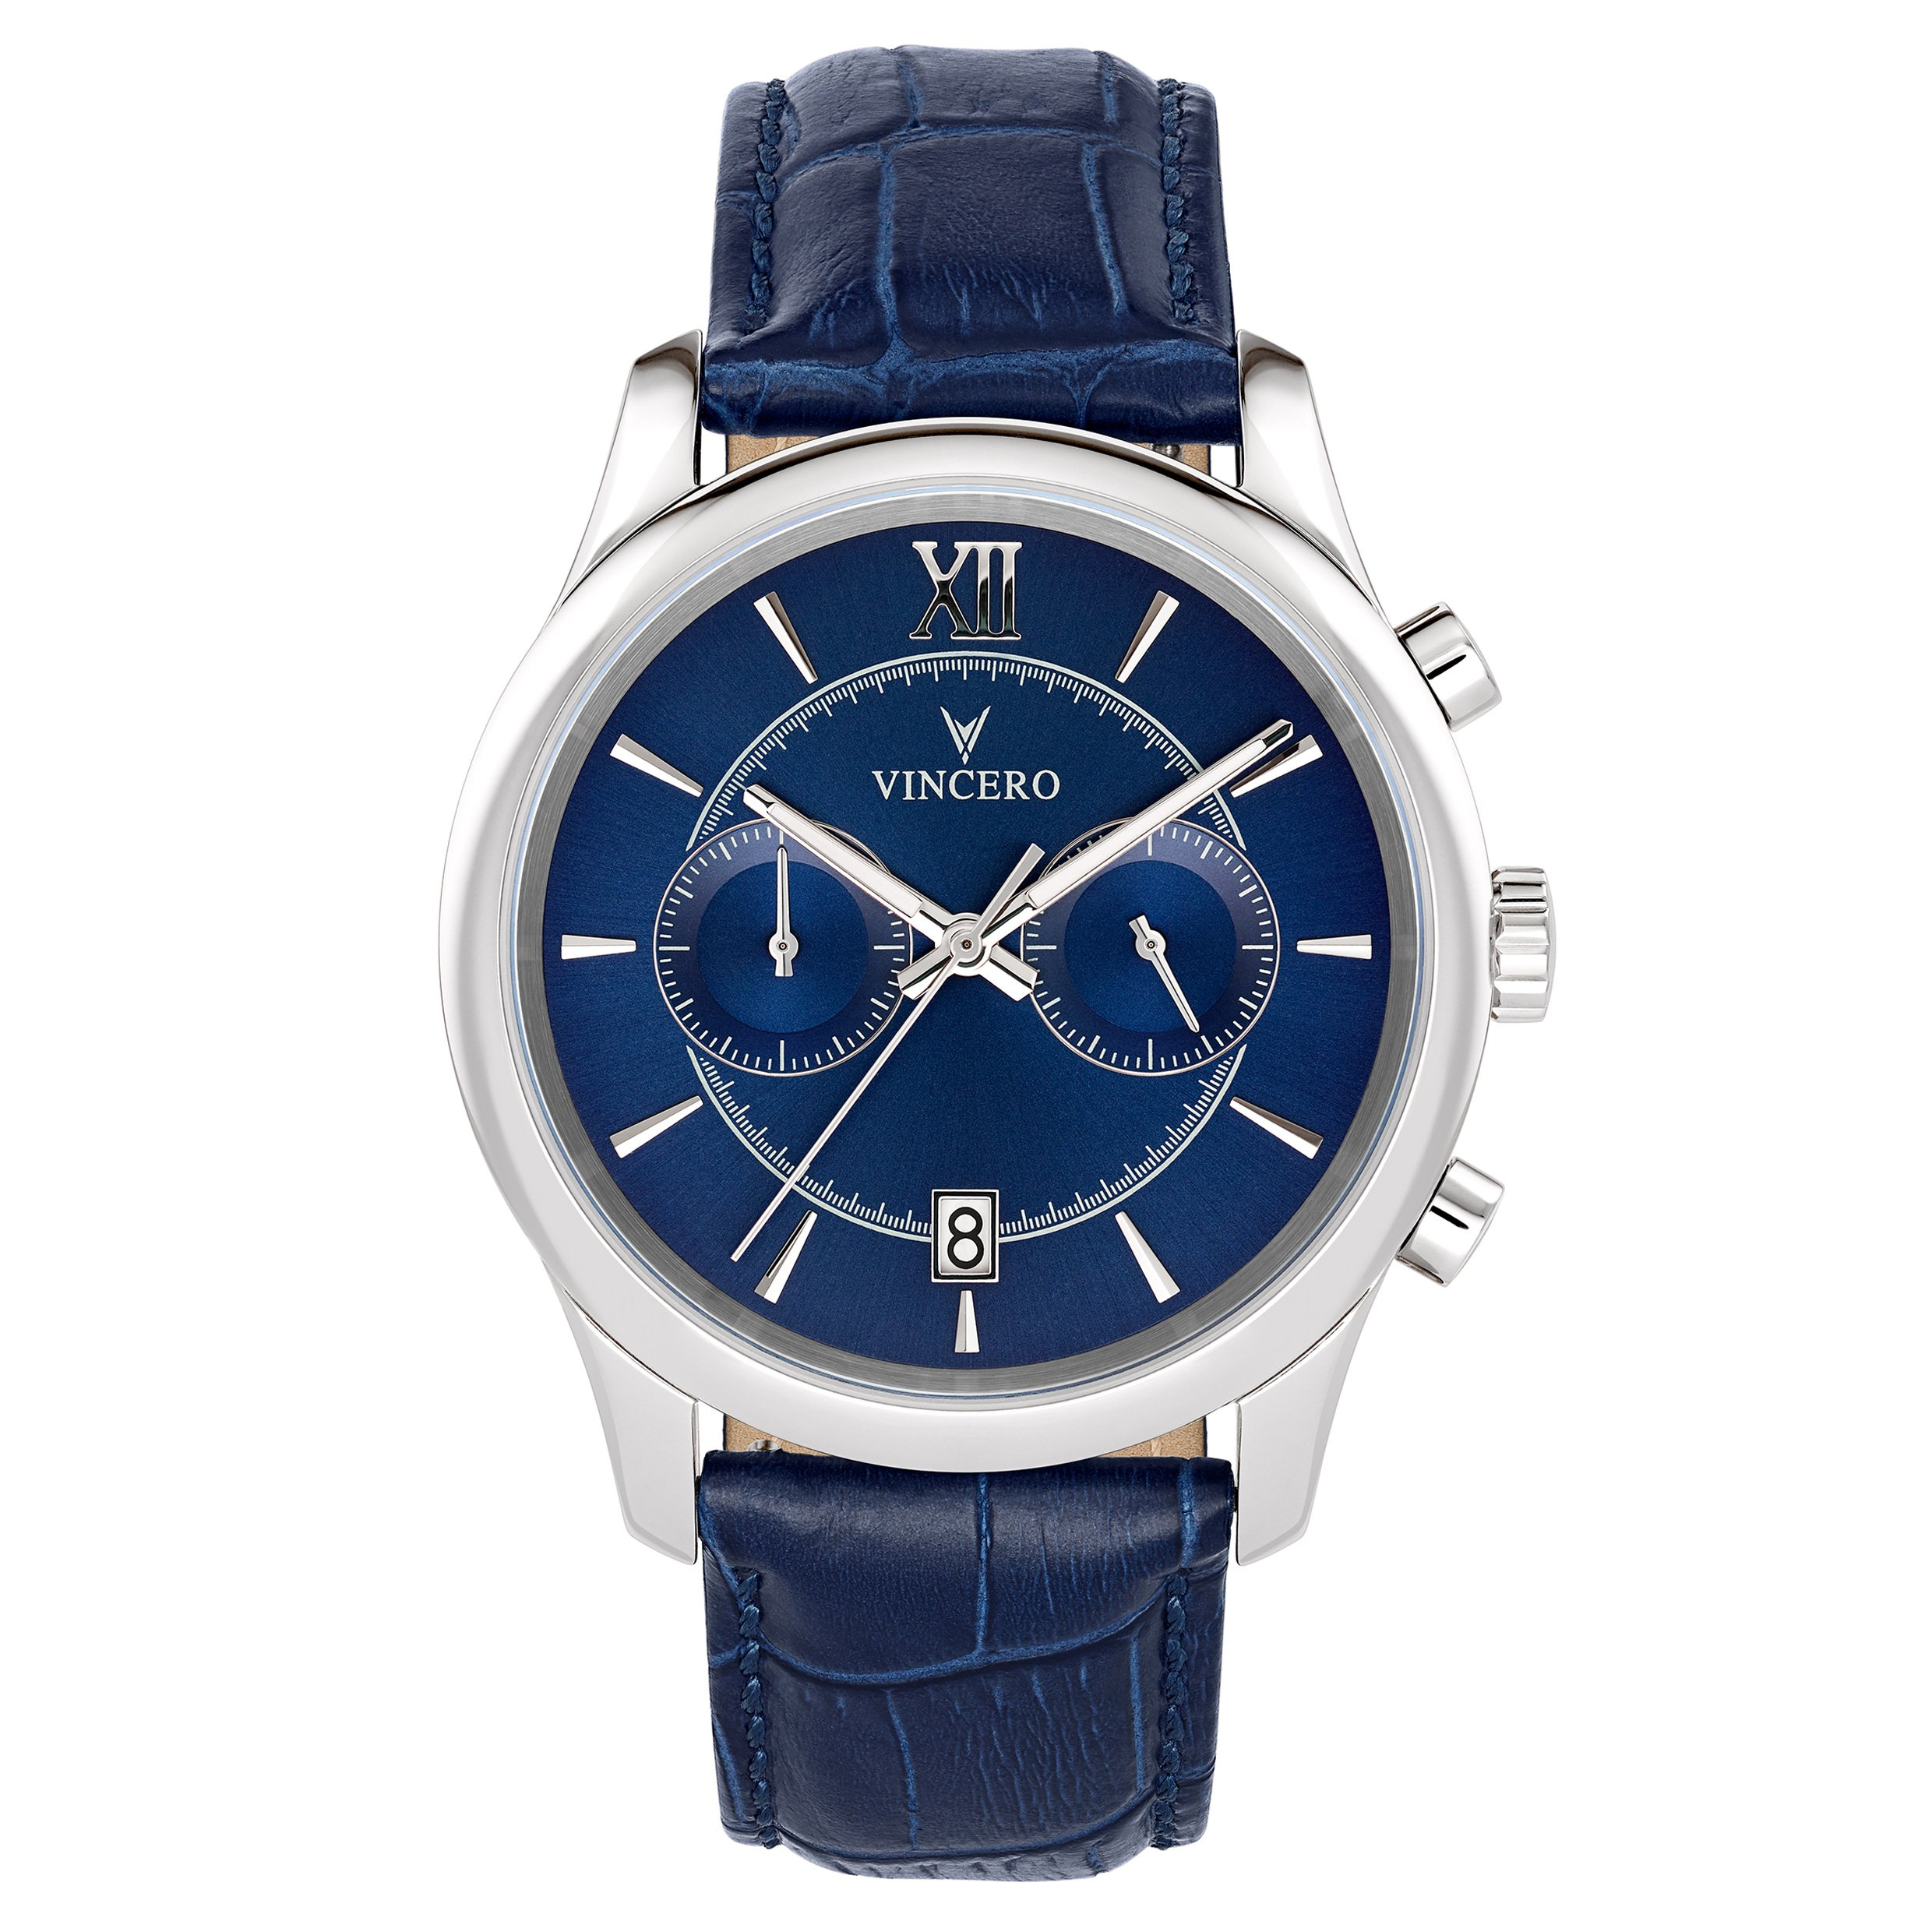 Vincero Men's Bellwether Blue & Silver Chronograph Watch with Leather Band by Vincero